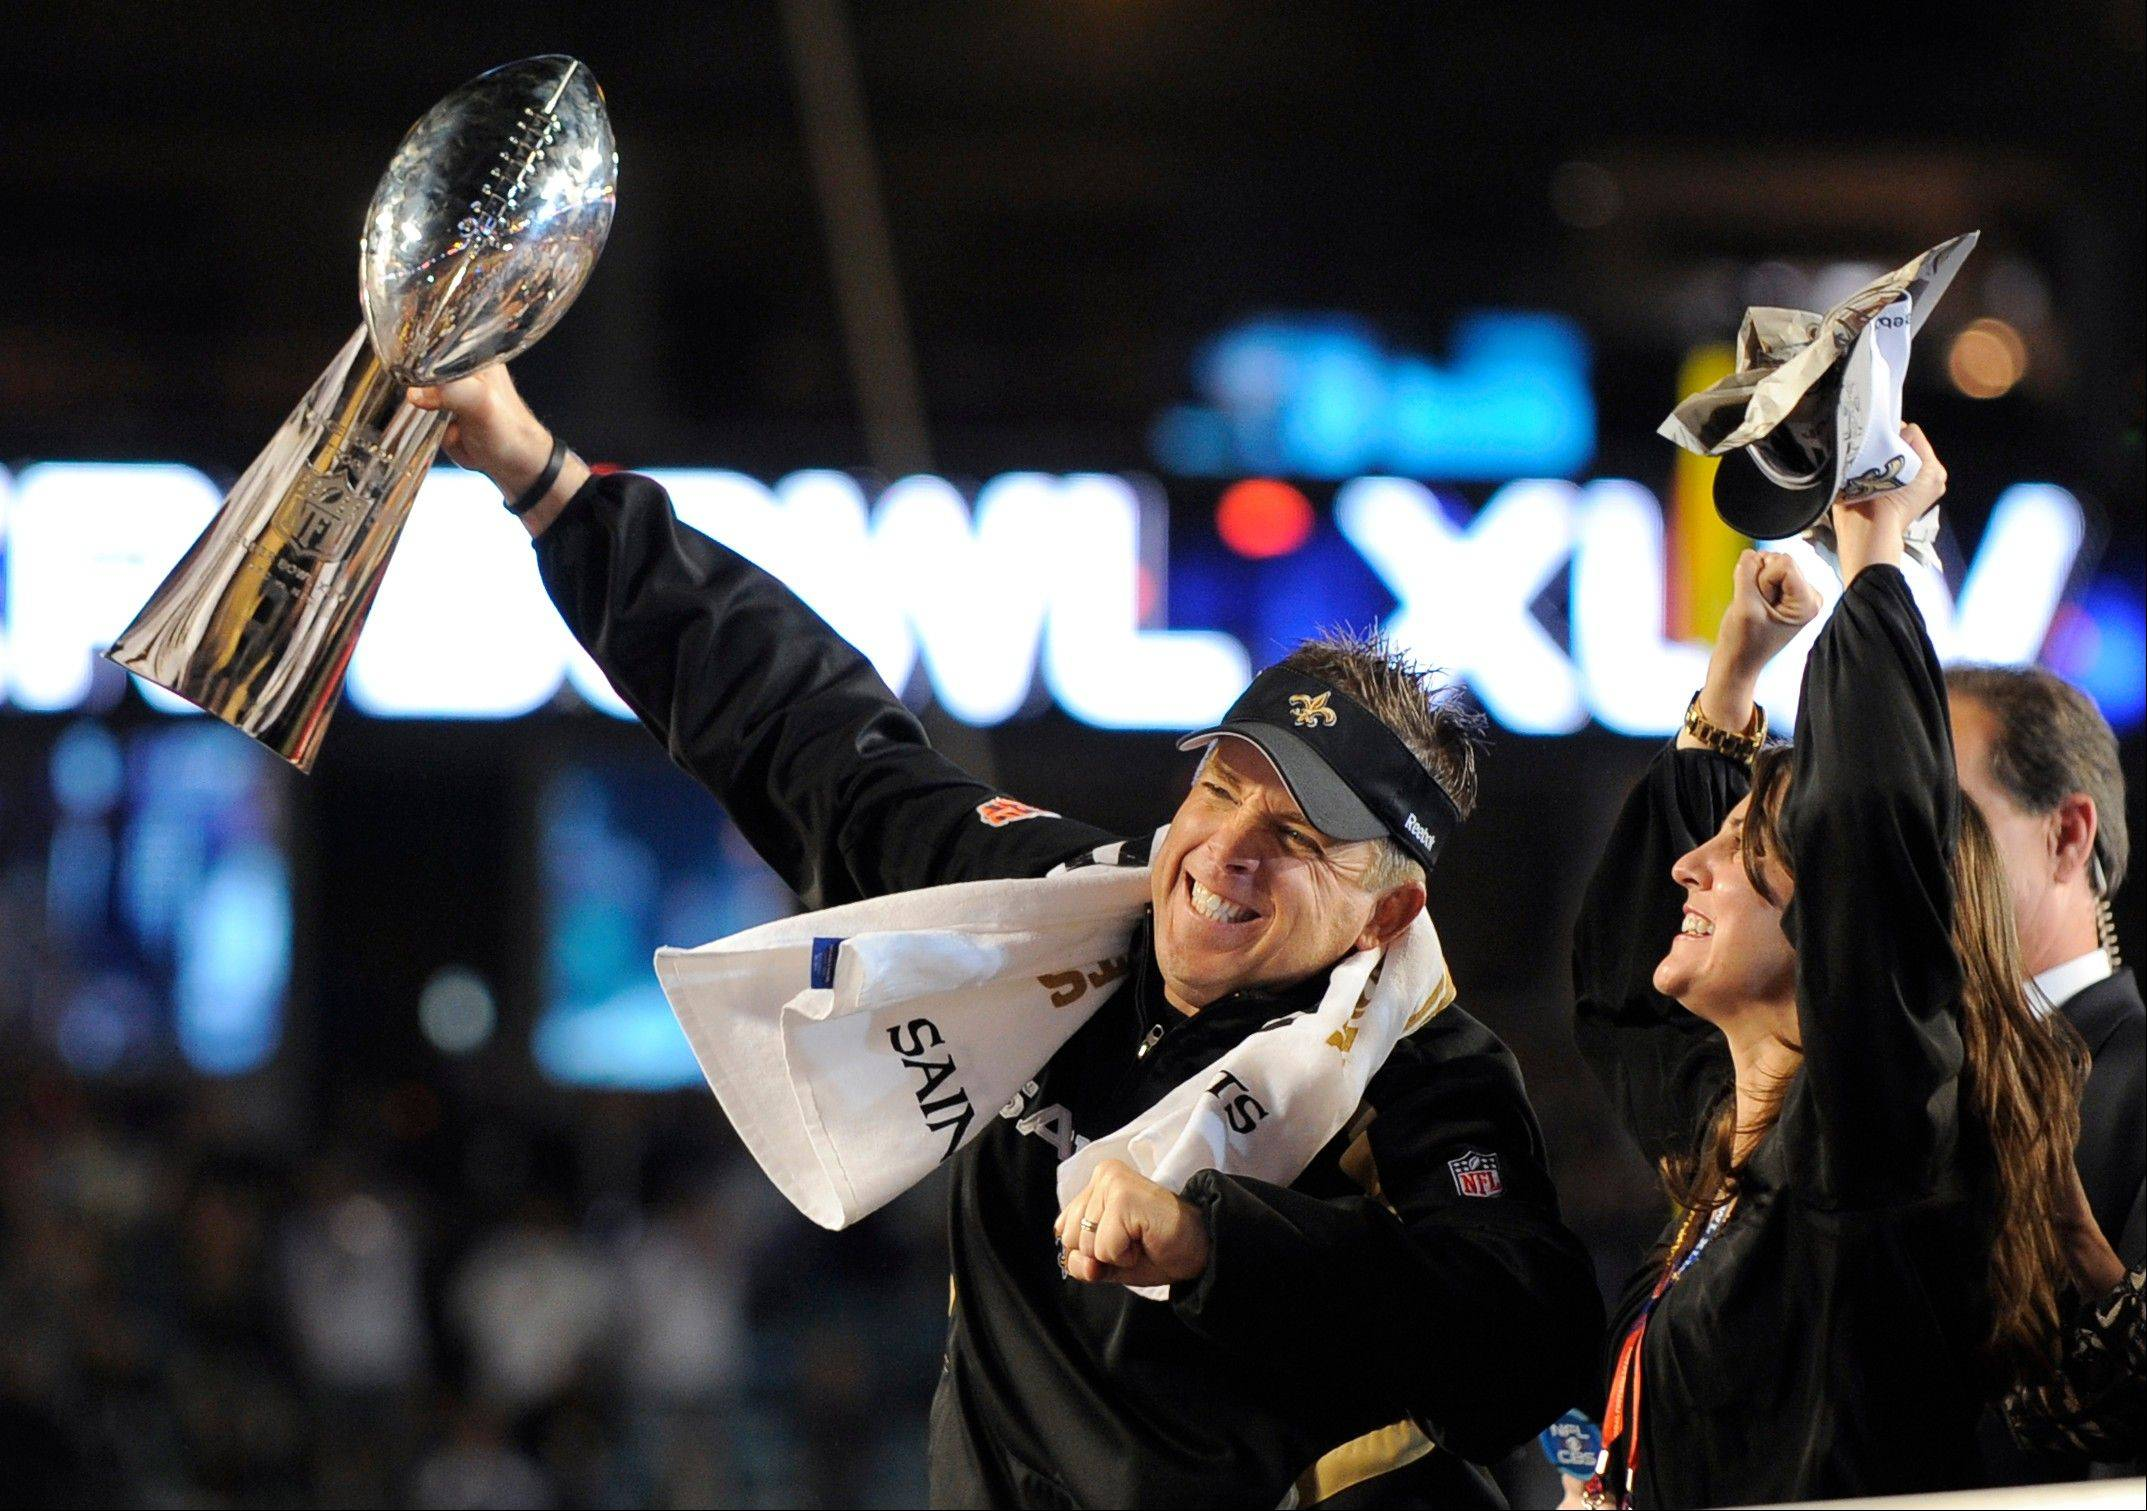 Saints head coach Sean Payton, left, celebrates after winning the NFL Super Bowl XLIV football game in Miami. Saints head coach Sean Payton was suspended without pay for the 2012 season by NFL Commissioner Roger Goodell, and former Saints defensive coordinator Gregg Williams was banned indefinitely on Wednesday, March 21, 2012, because of the team's bounty program that targeted opposing players.